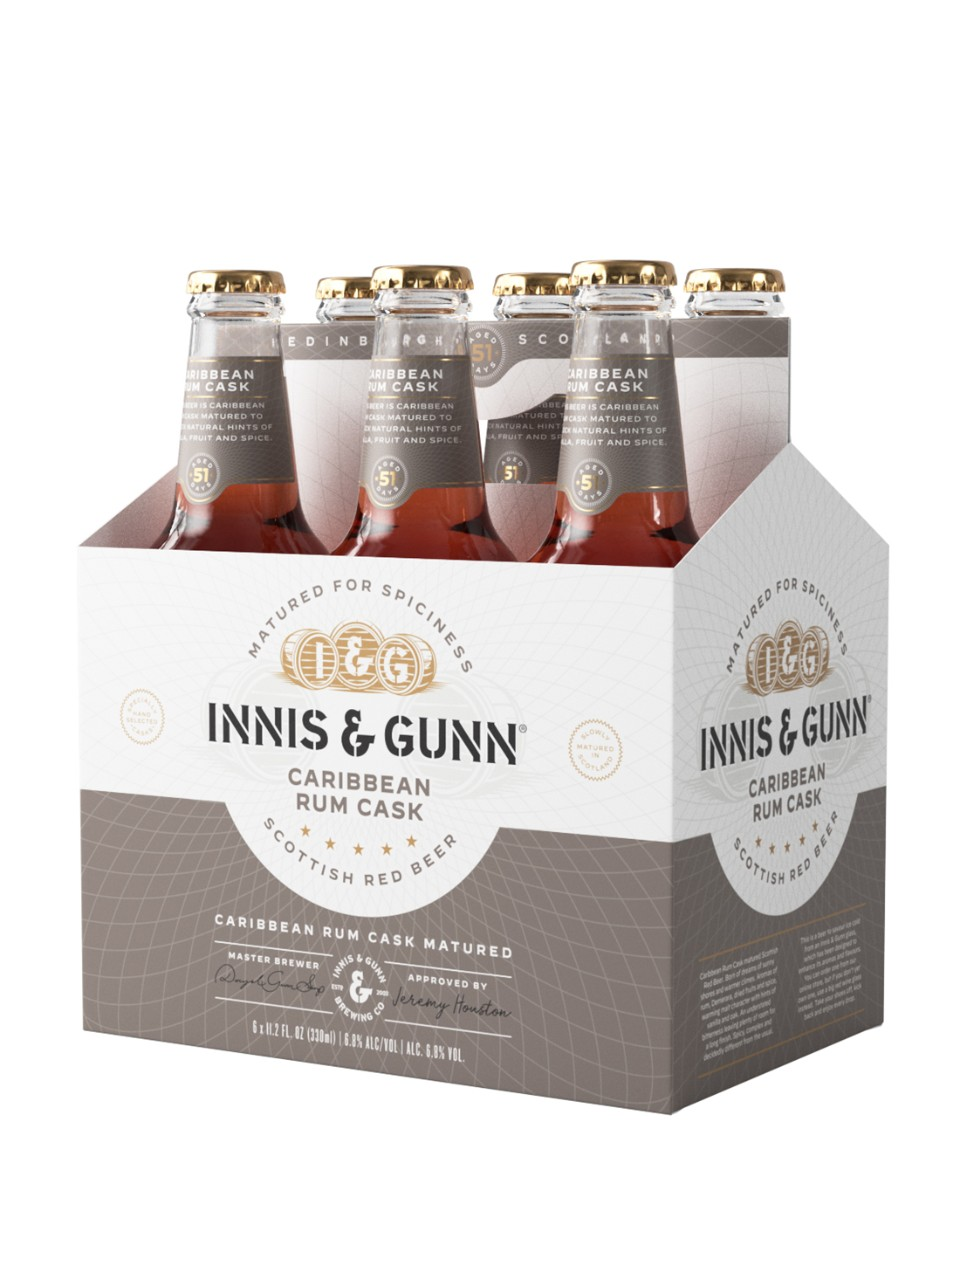 Innis & Gunn Blood Red Sky from LCBO